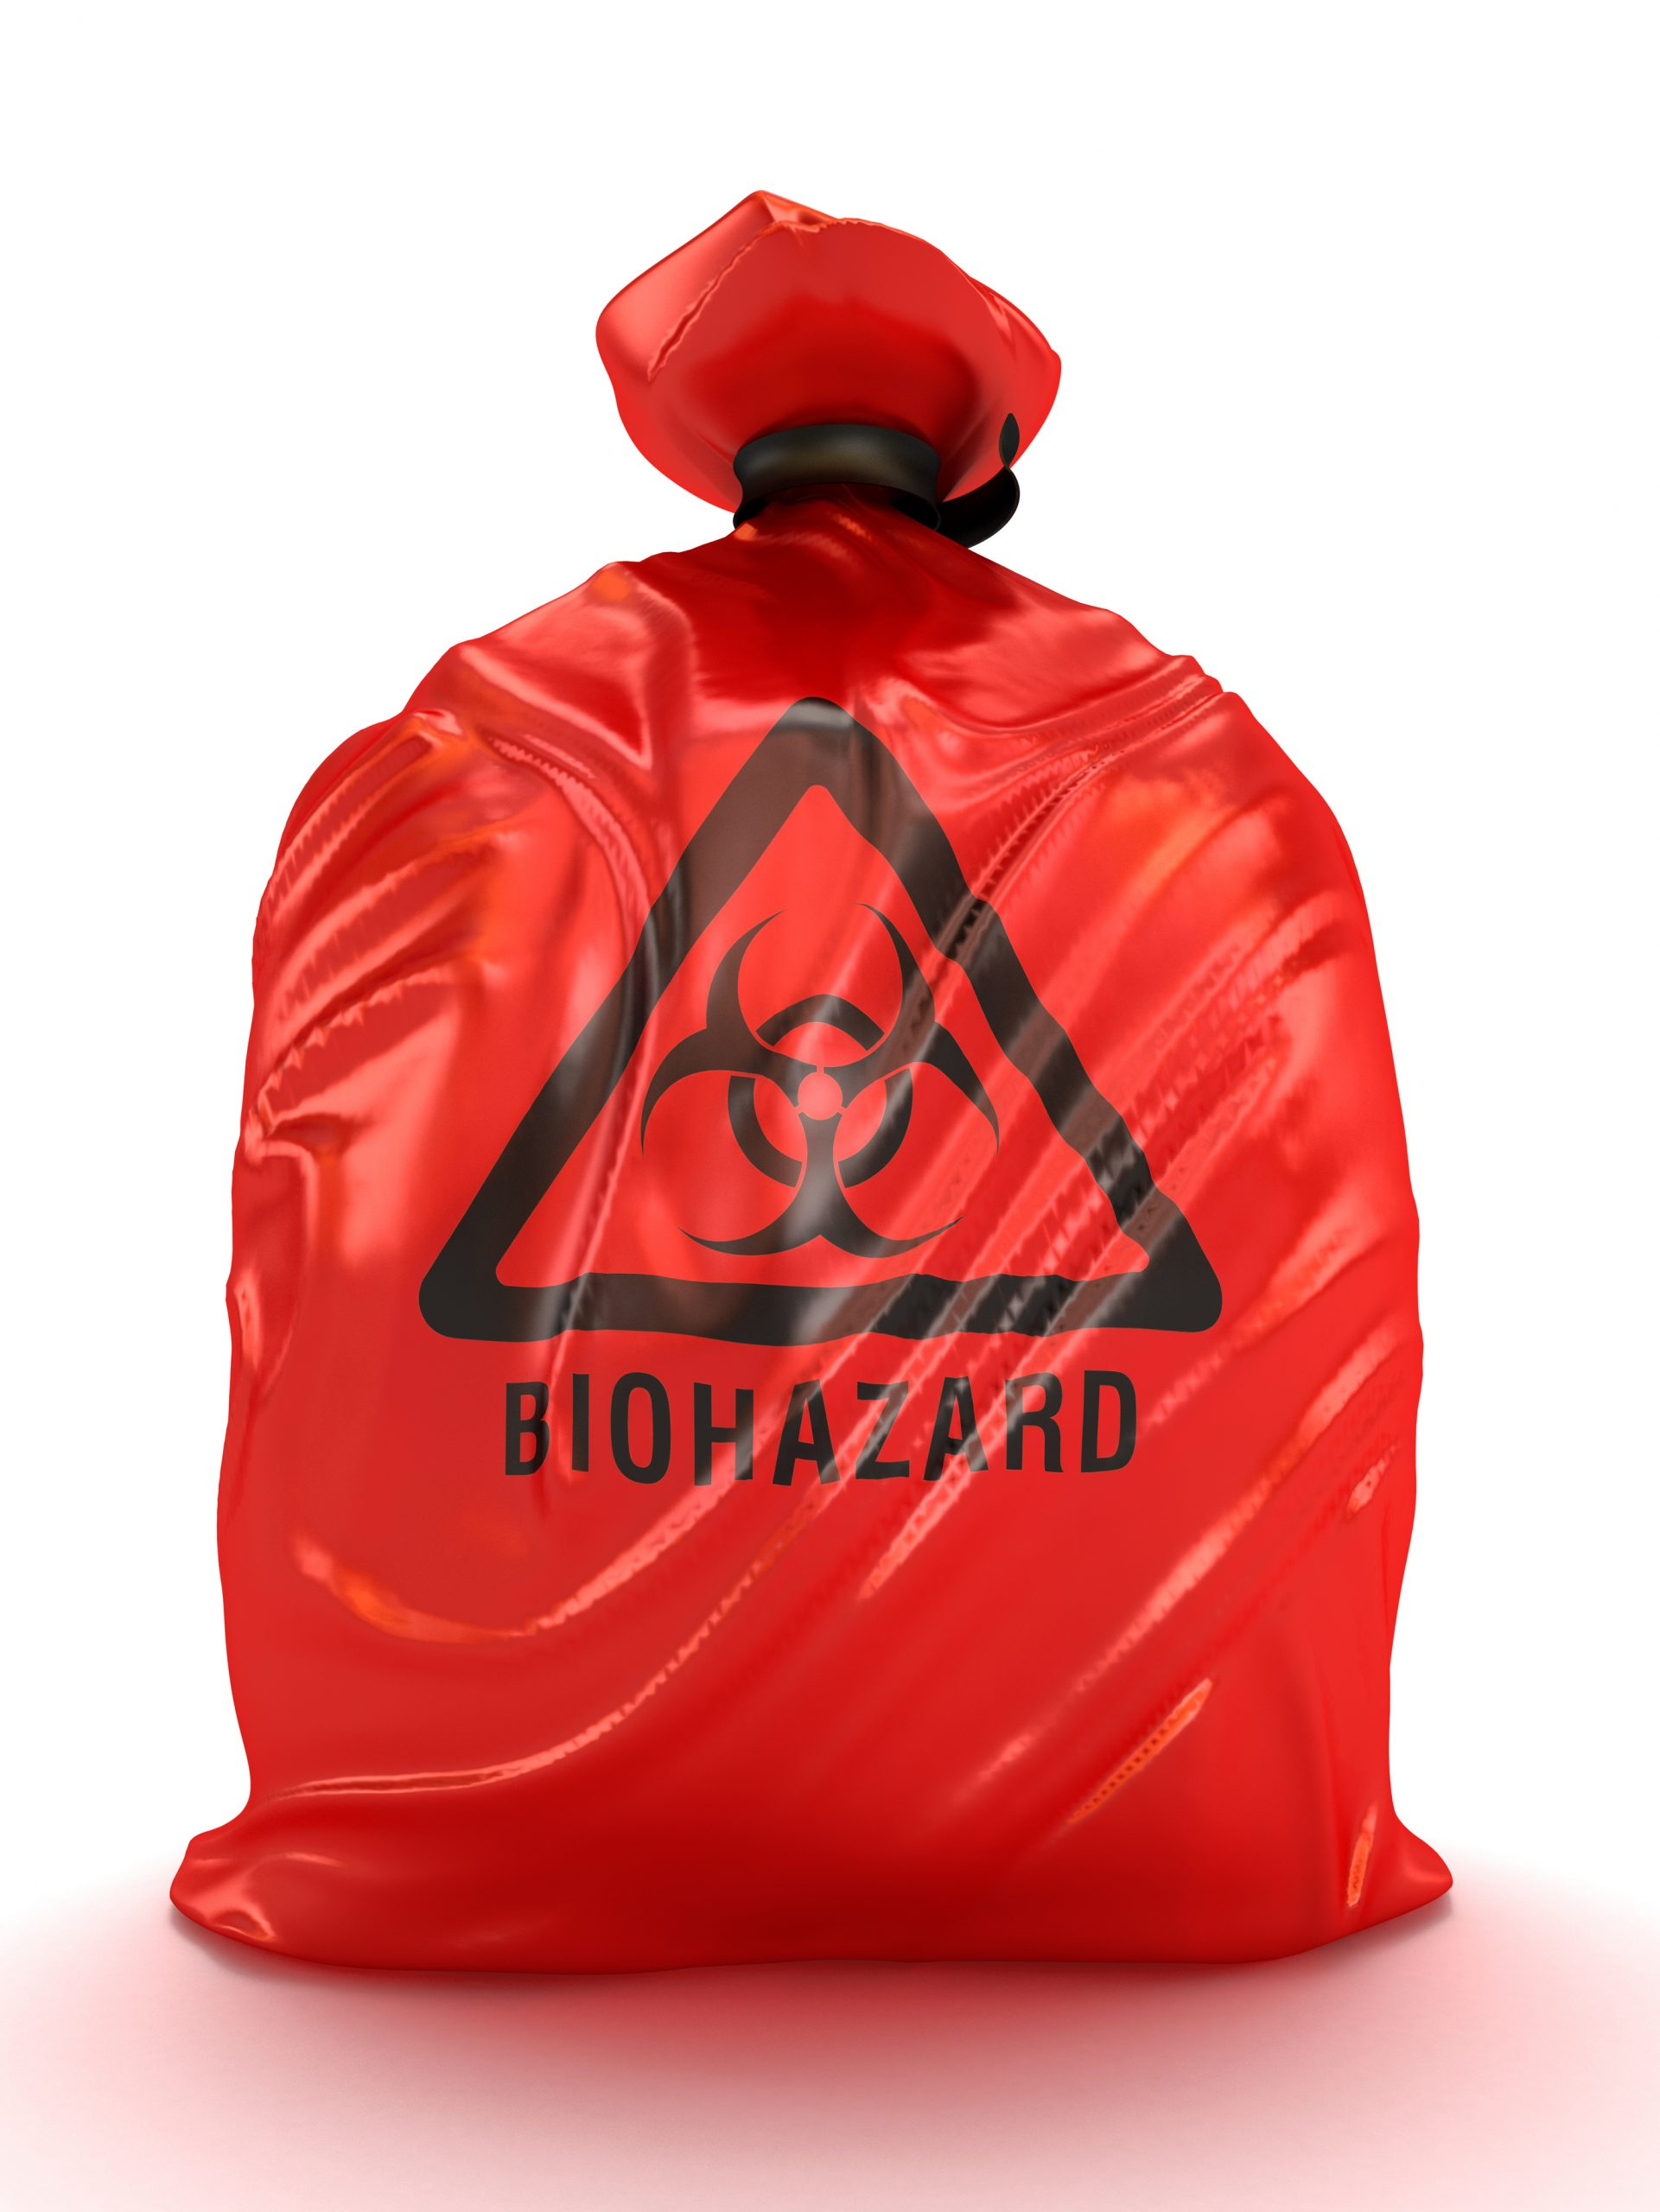 Goodyear Crime Scene Cleanup Biohazard bags